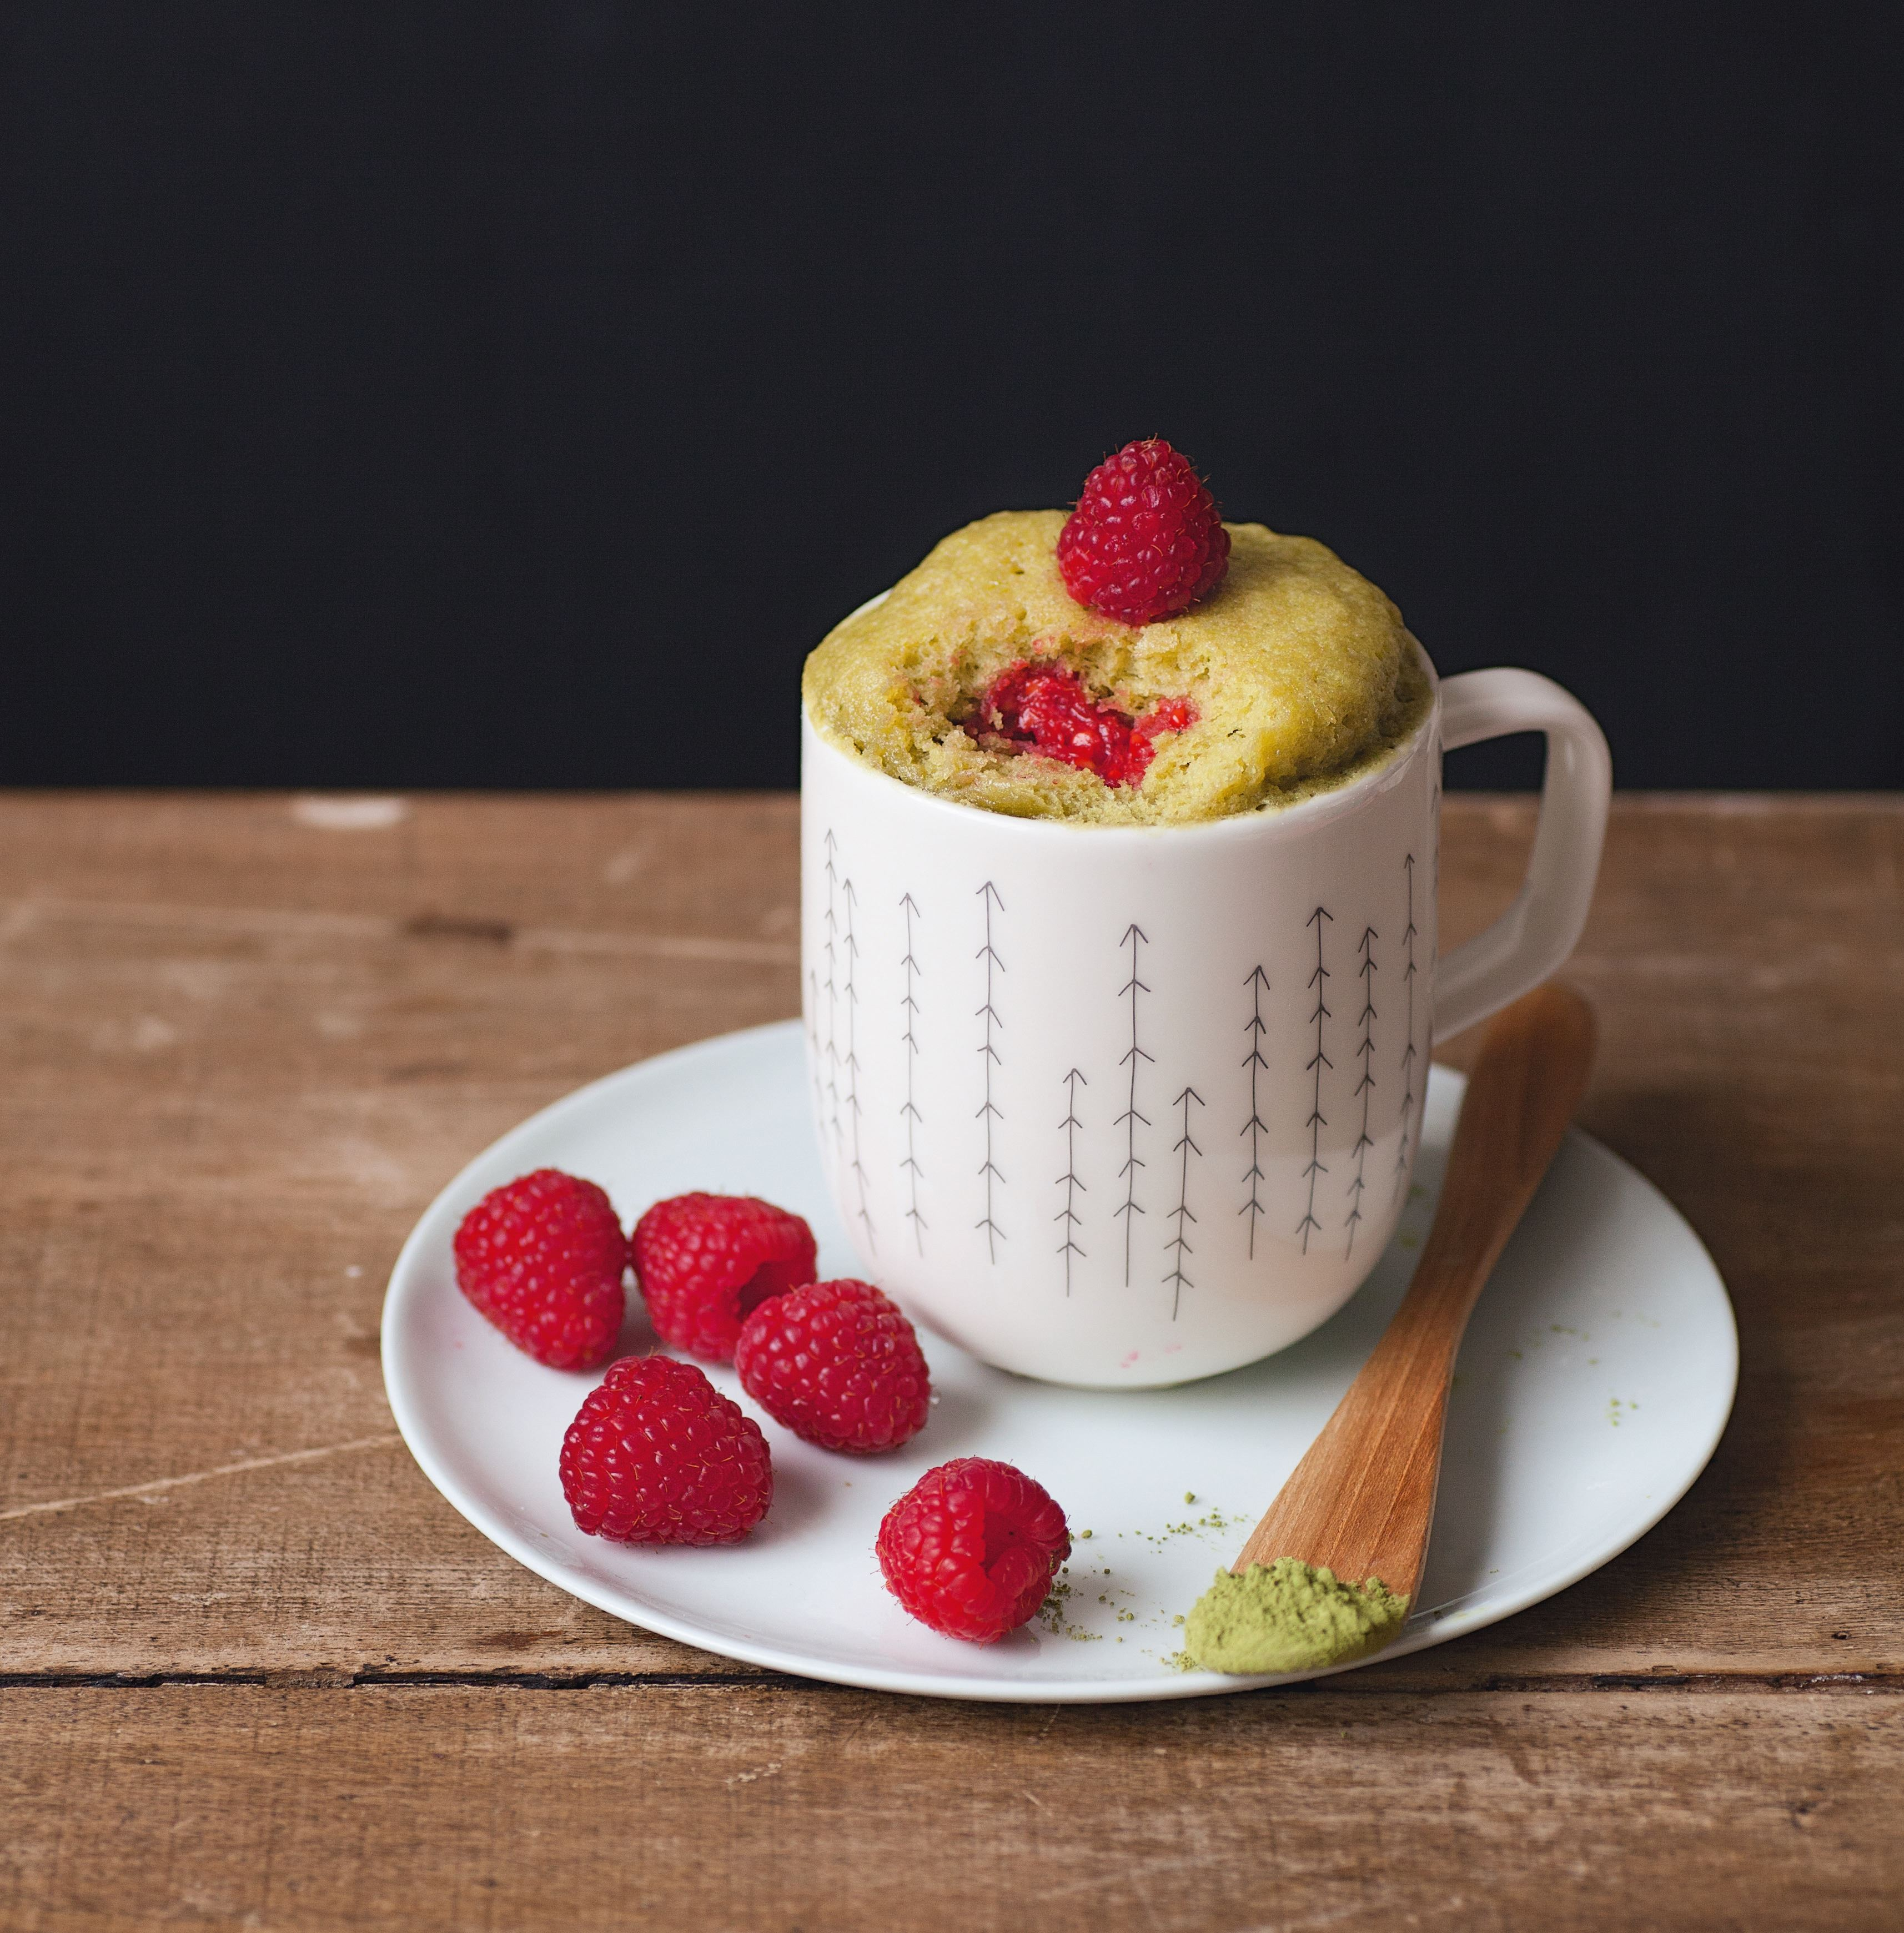 White chocolate & raspberry mug cake with matcha green tea